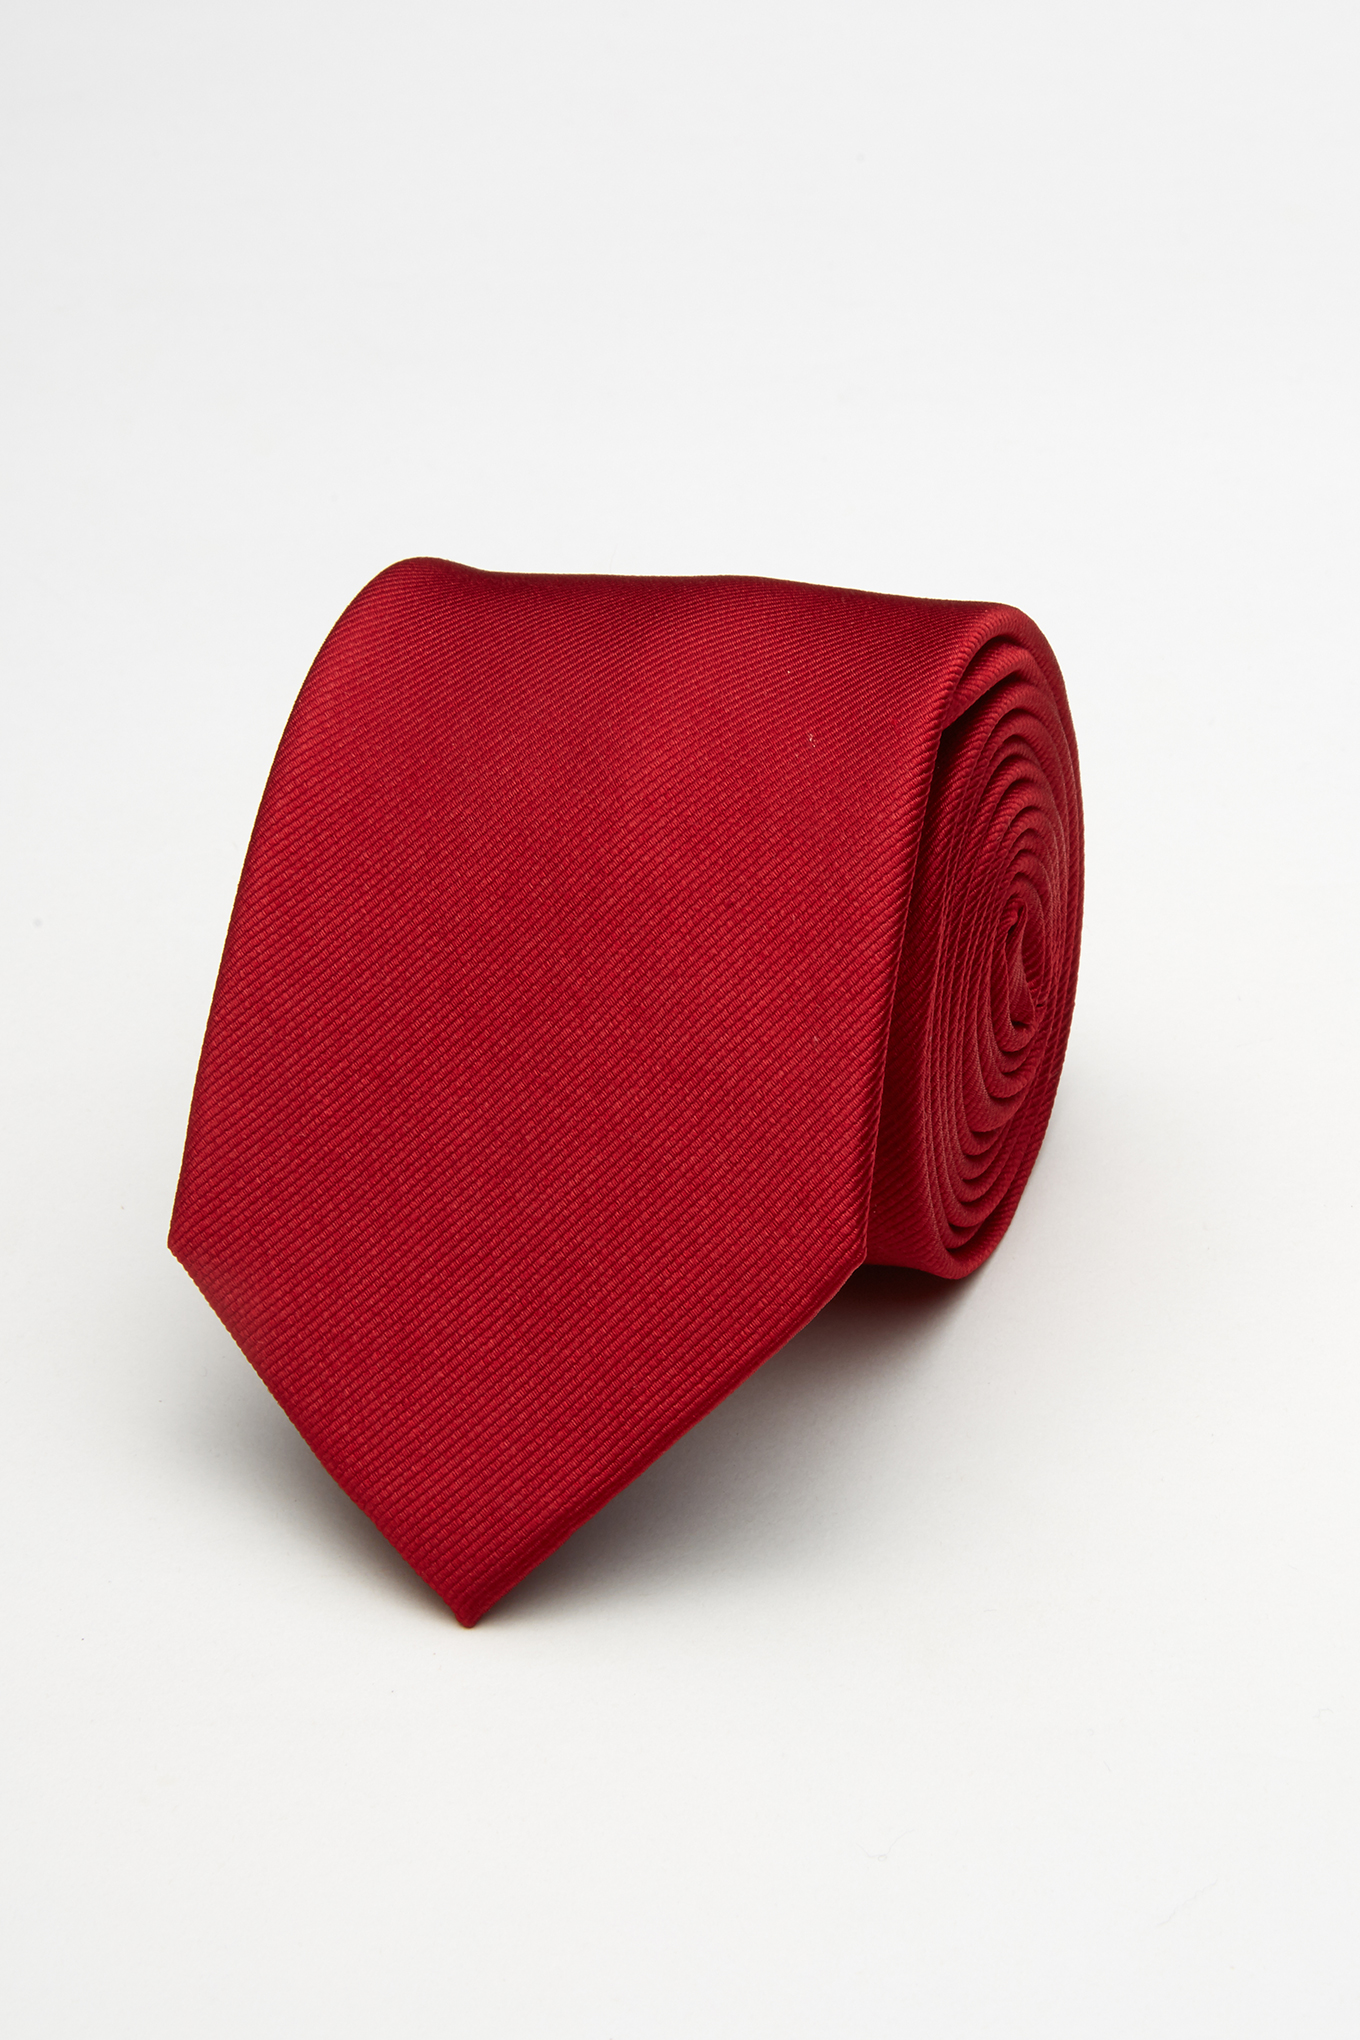 Tie Red Classic Man